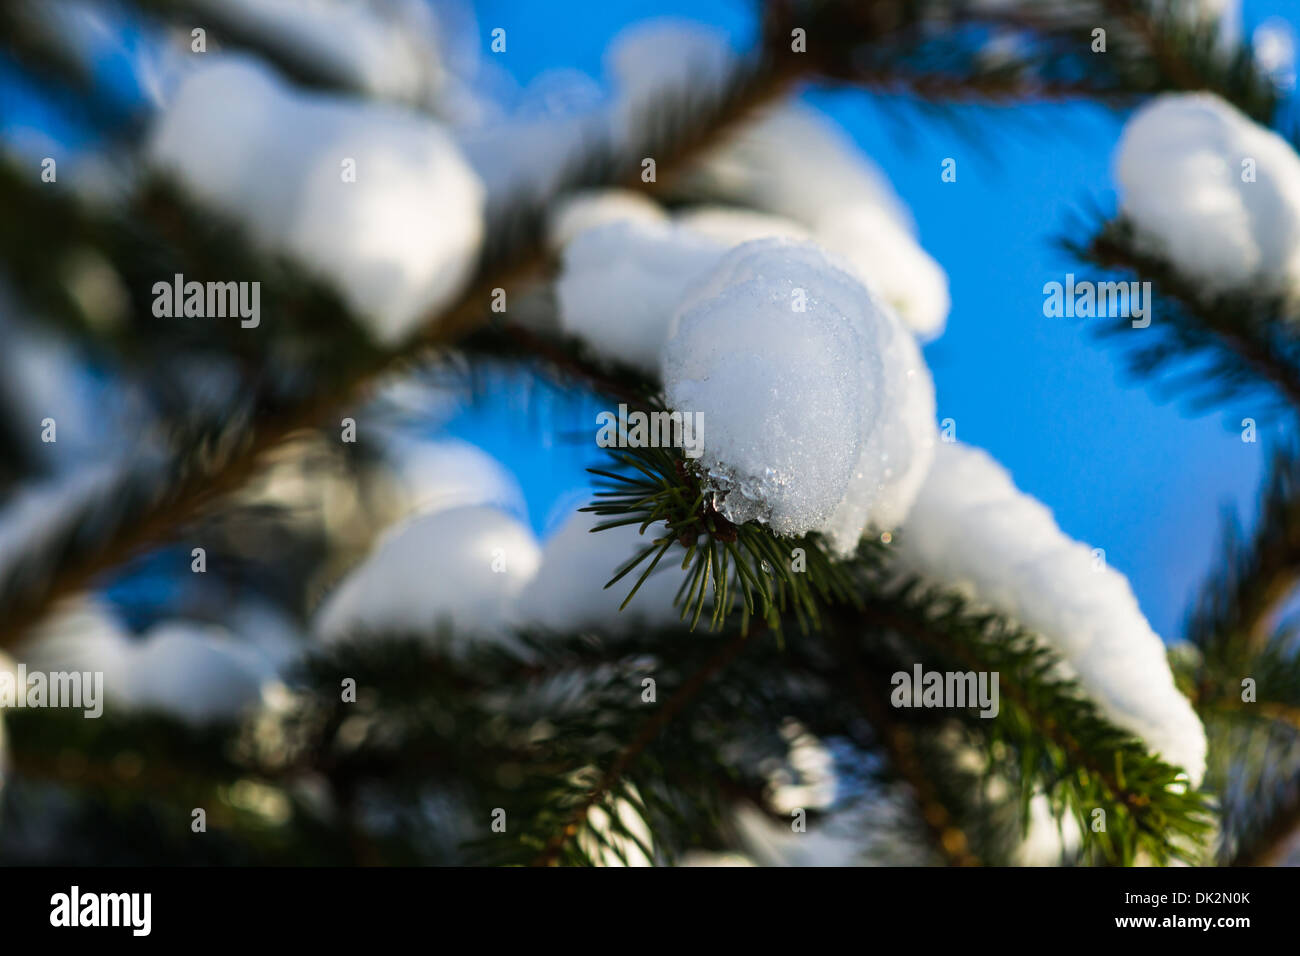 Christmas Tree 8 Closeup view of a spruce tree, covered with fresh snow. The evergreen joyfulness of Christmas holidays - Stock Image